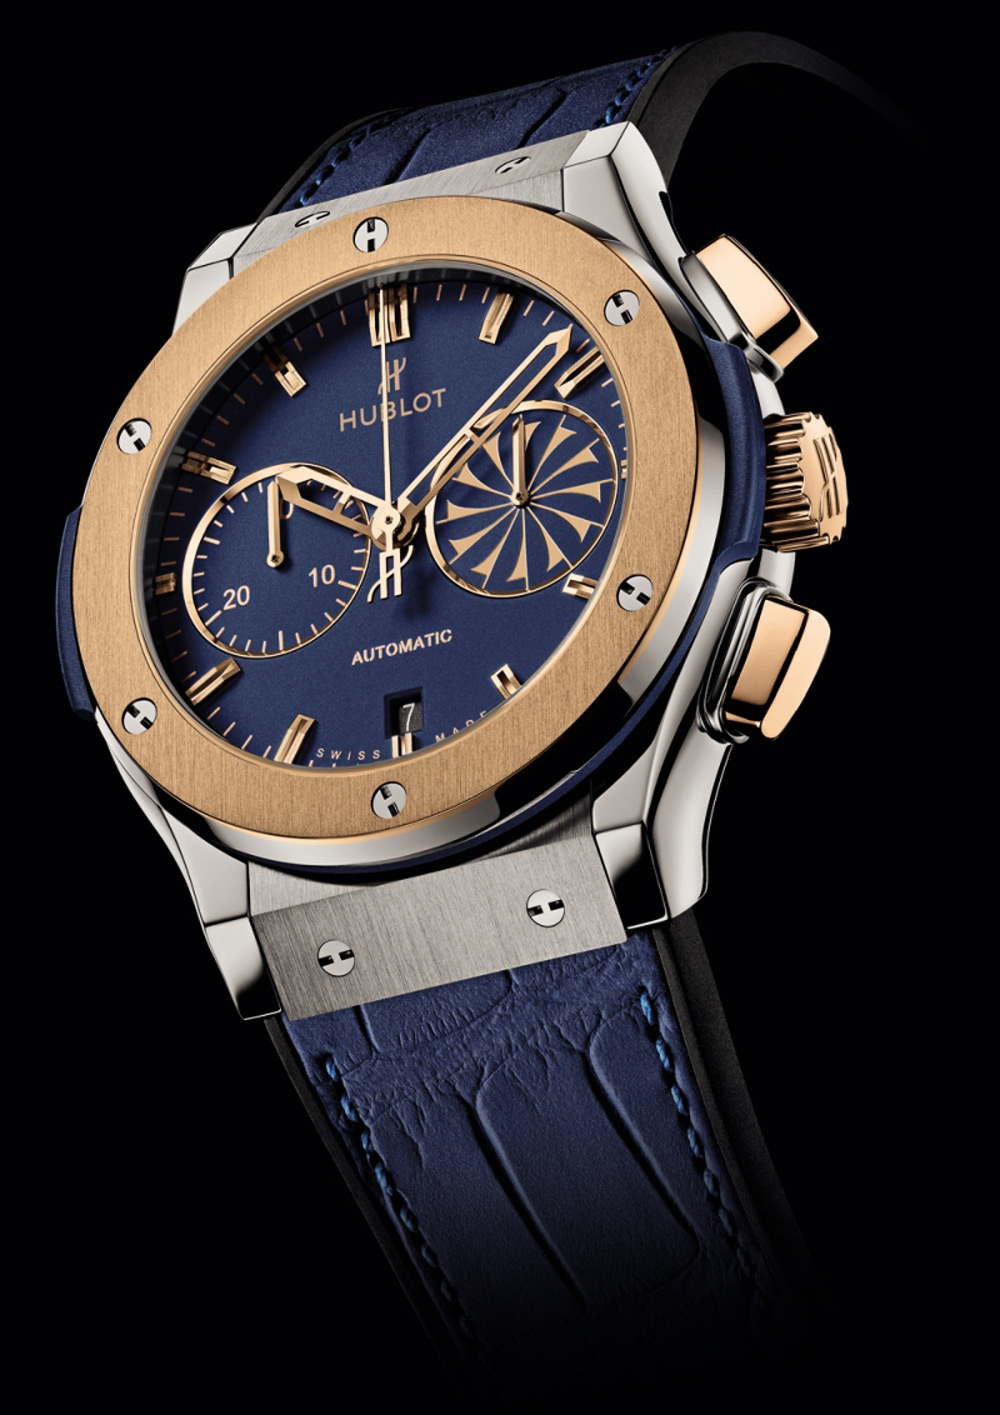 Hublot Mykonos Watch Two New Limited Editions